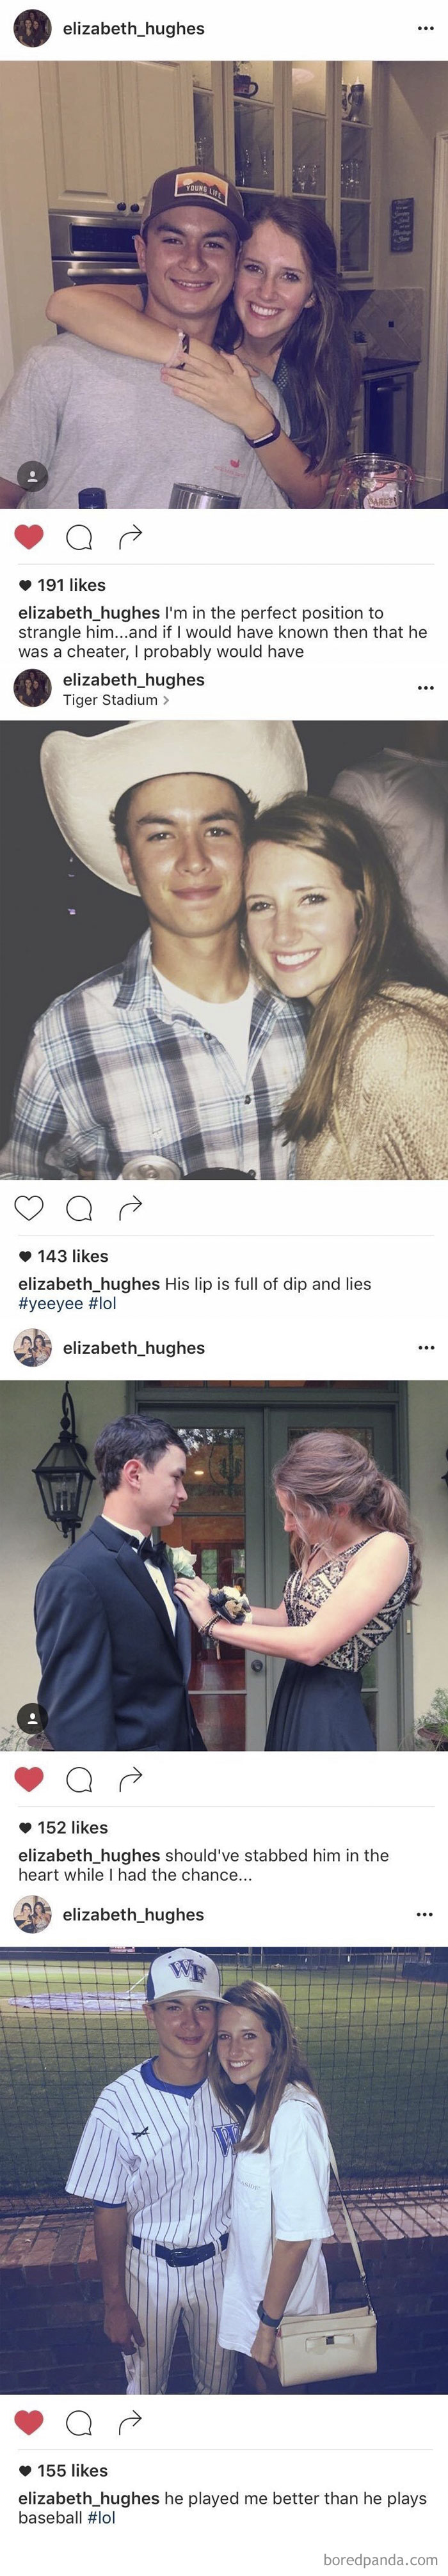 This Girl Changed All Of Her Instagram Captions After She Found Out He Cheated